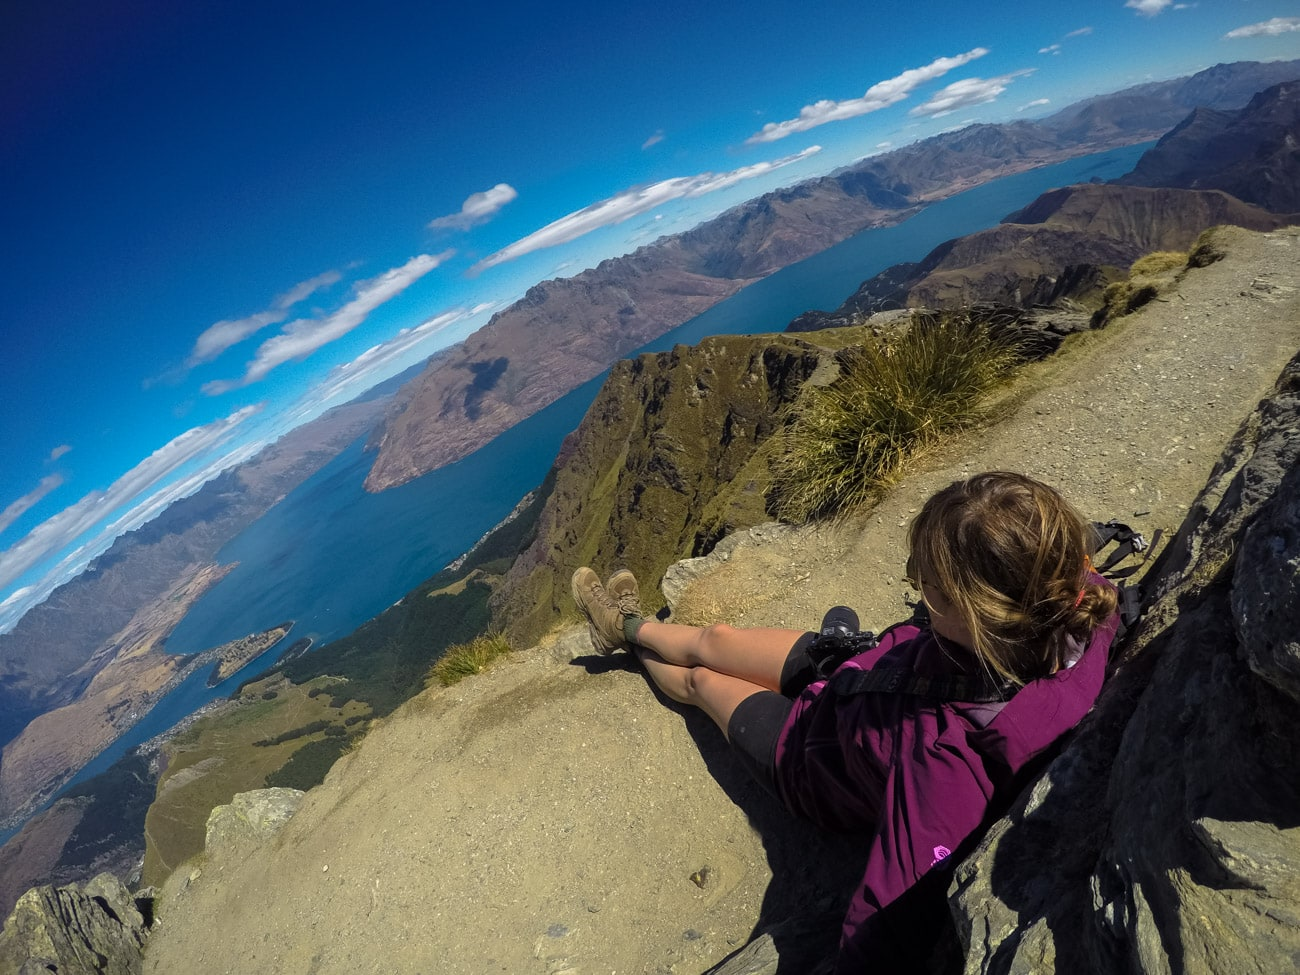 Queenstown Travel Guide: Hiking to the summit of Ben Lomond